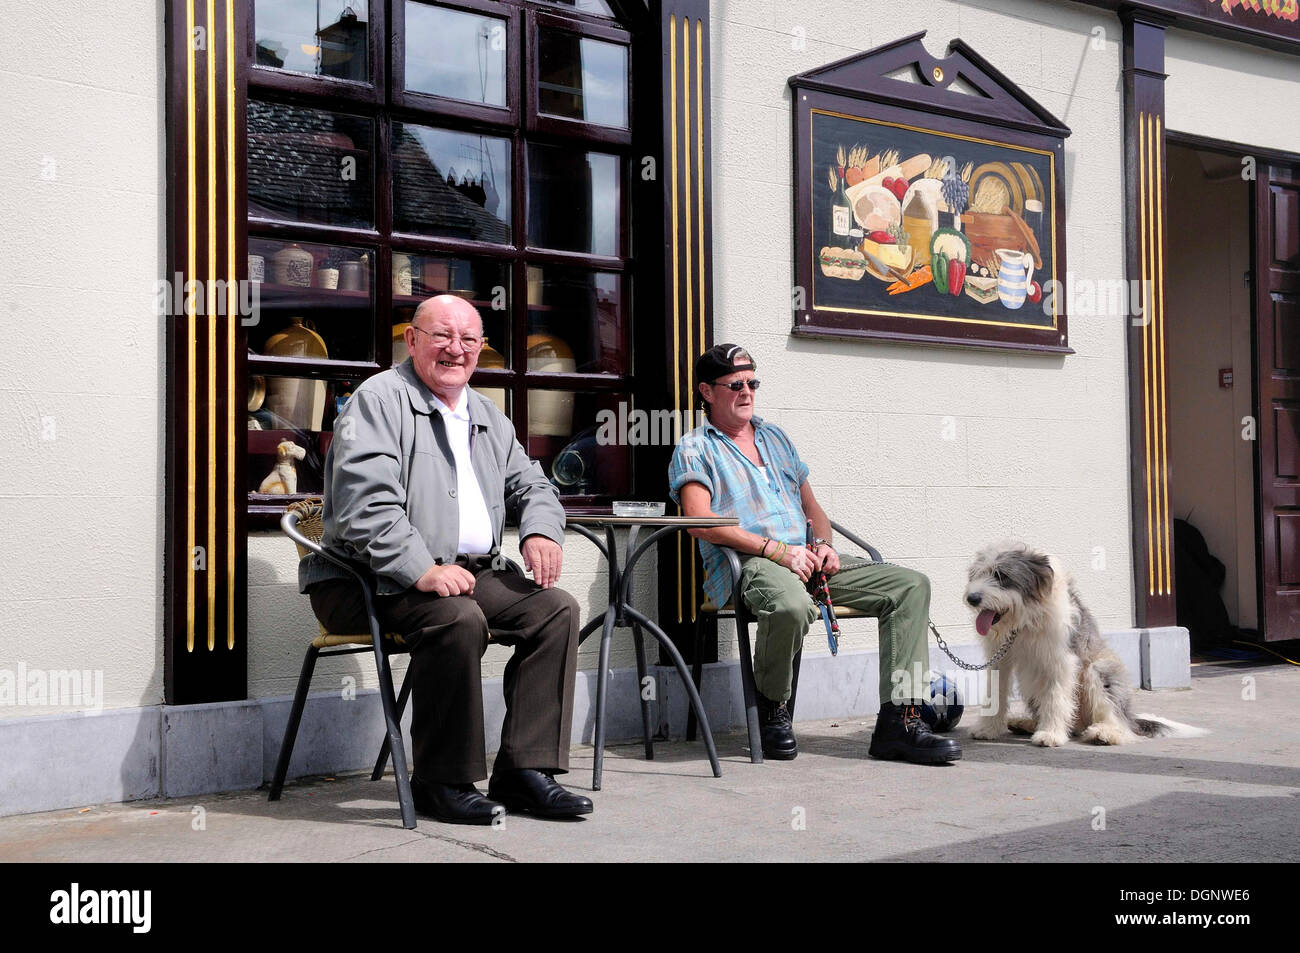 Scene outside a bar or a pub, Birr, Offaly, Midlands, Ireland, Europe - Stock Image